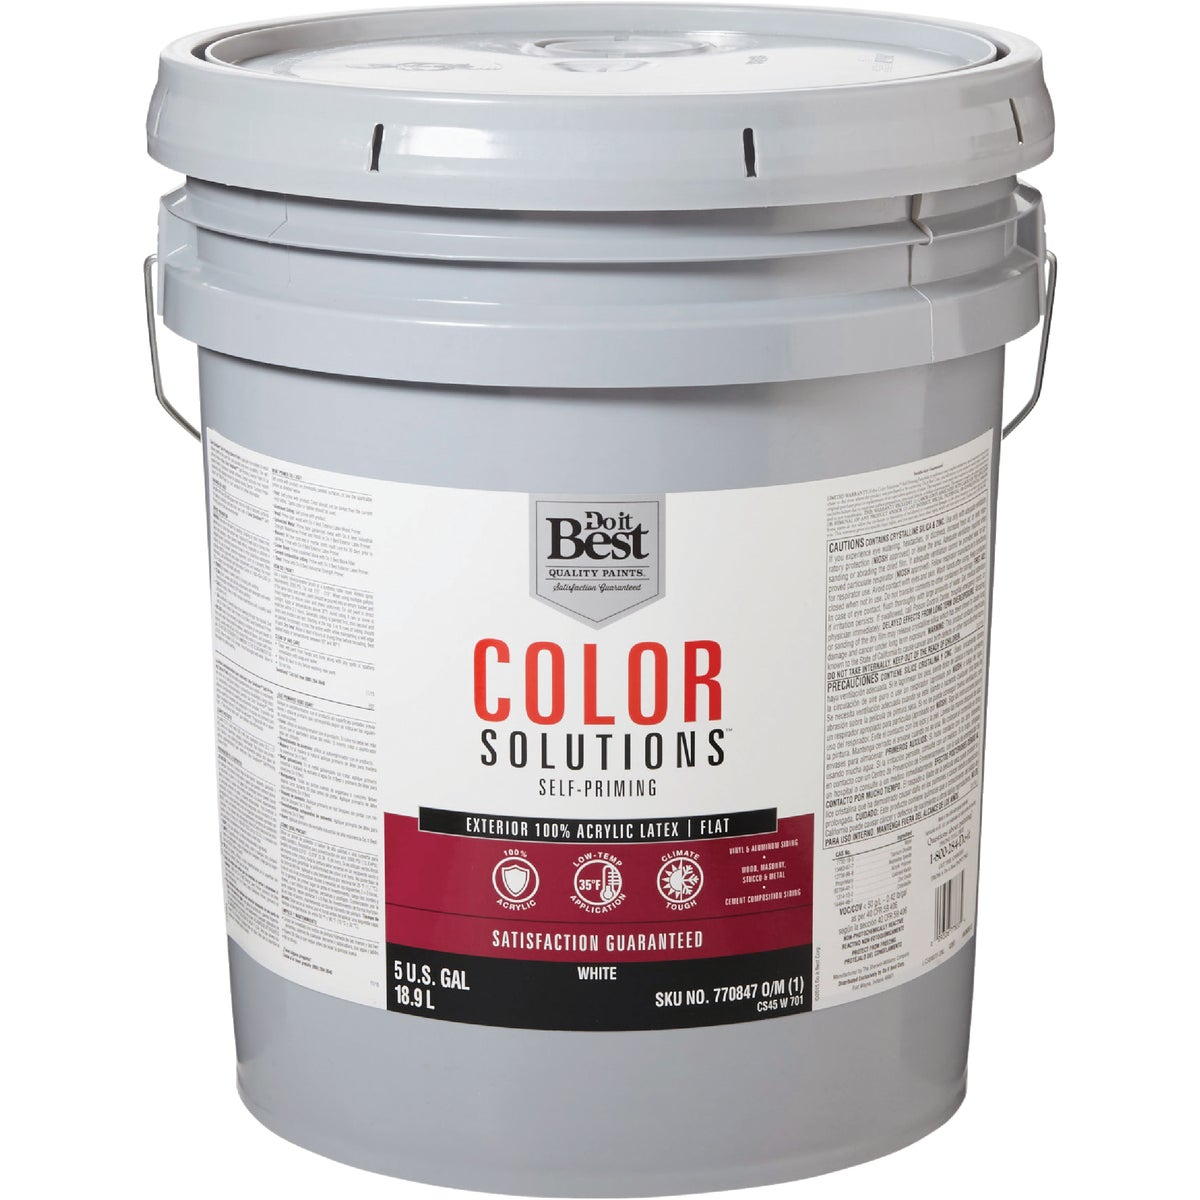 EXT FLAT WHITE PAINT - CS45W0701-20 by Do it Best